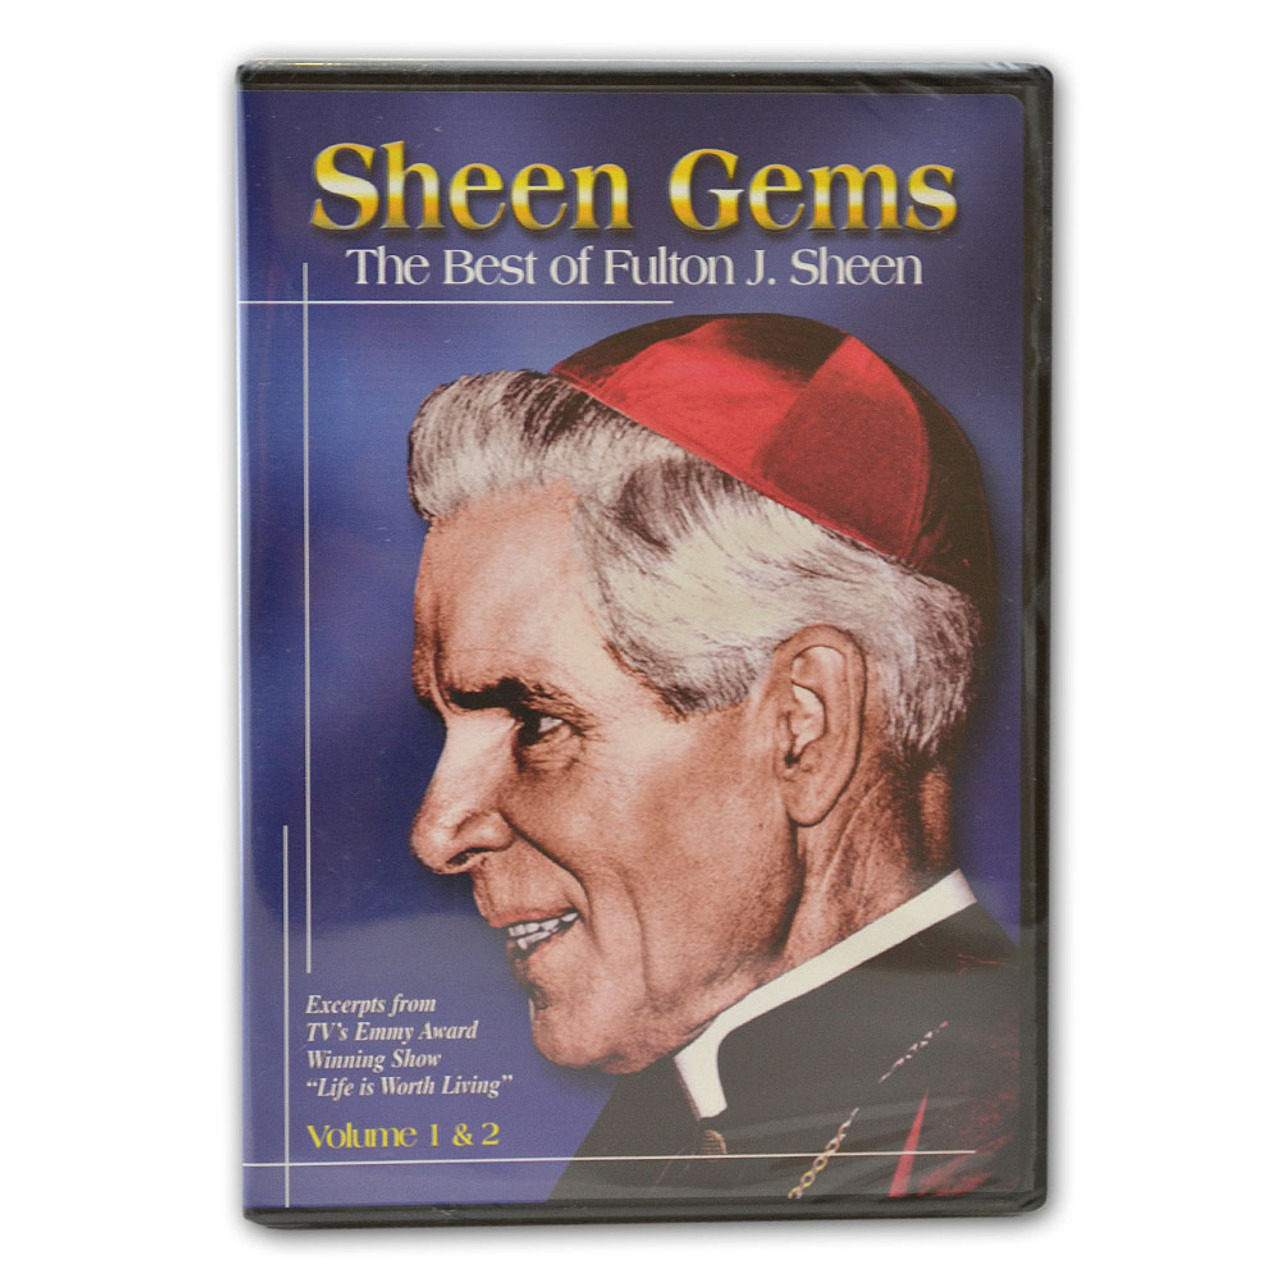 Sheen Gems The Best of Fulton J. Sheen